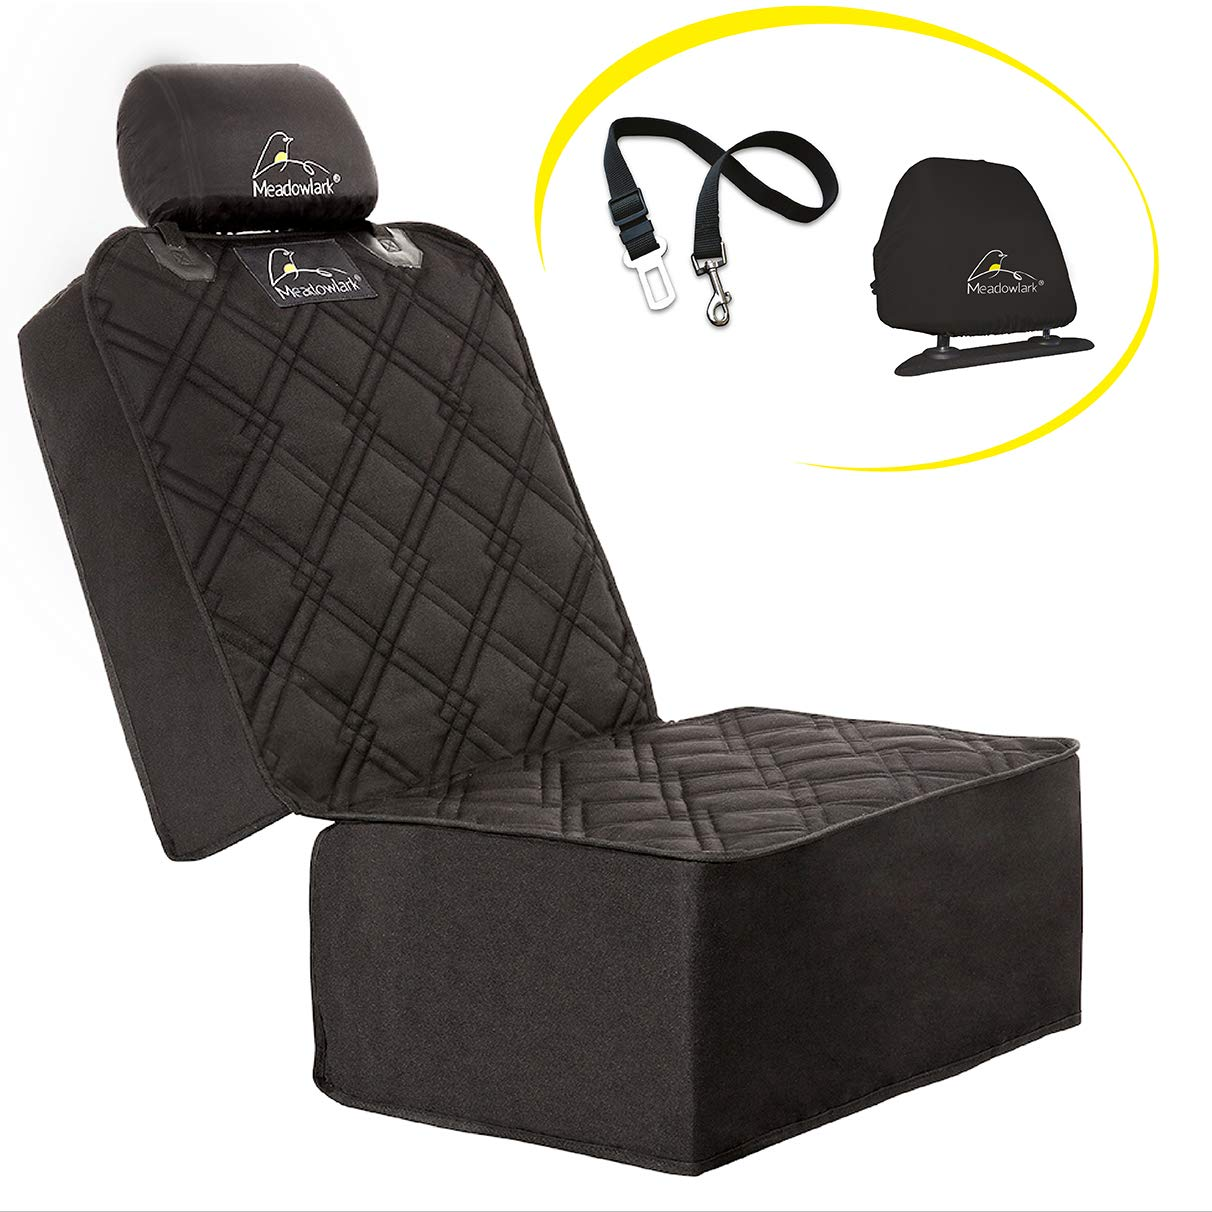 Meadowlark Car Seat Cover for Dogs. Premium Extra Thick Quilted Full Protection Front Seat Protector,Side Flaps, Waterproof, Durable, Nonslip Design, Free Bonus- Pet Seat Belt & Headrest Protector by Meadowlark